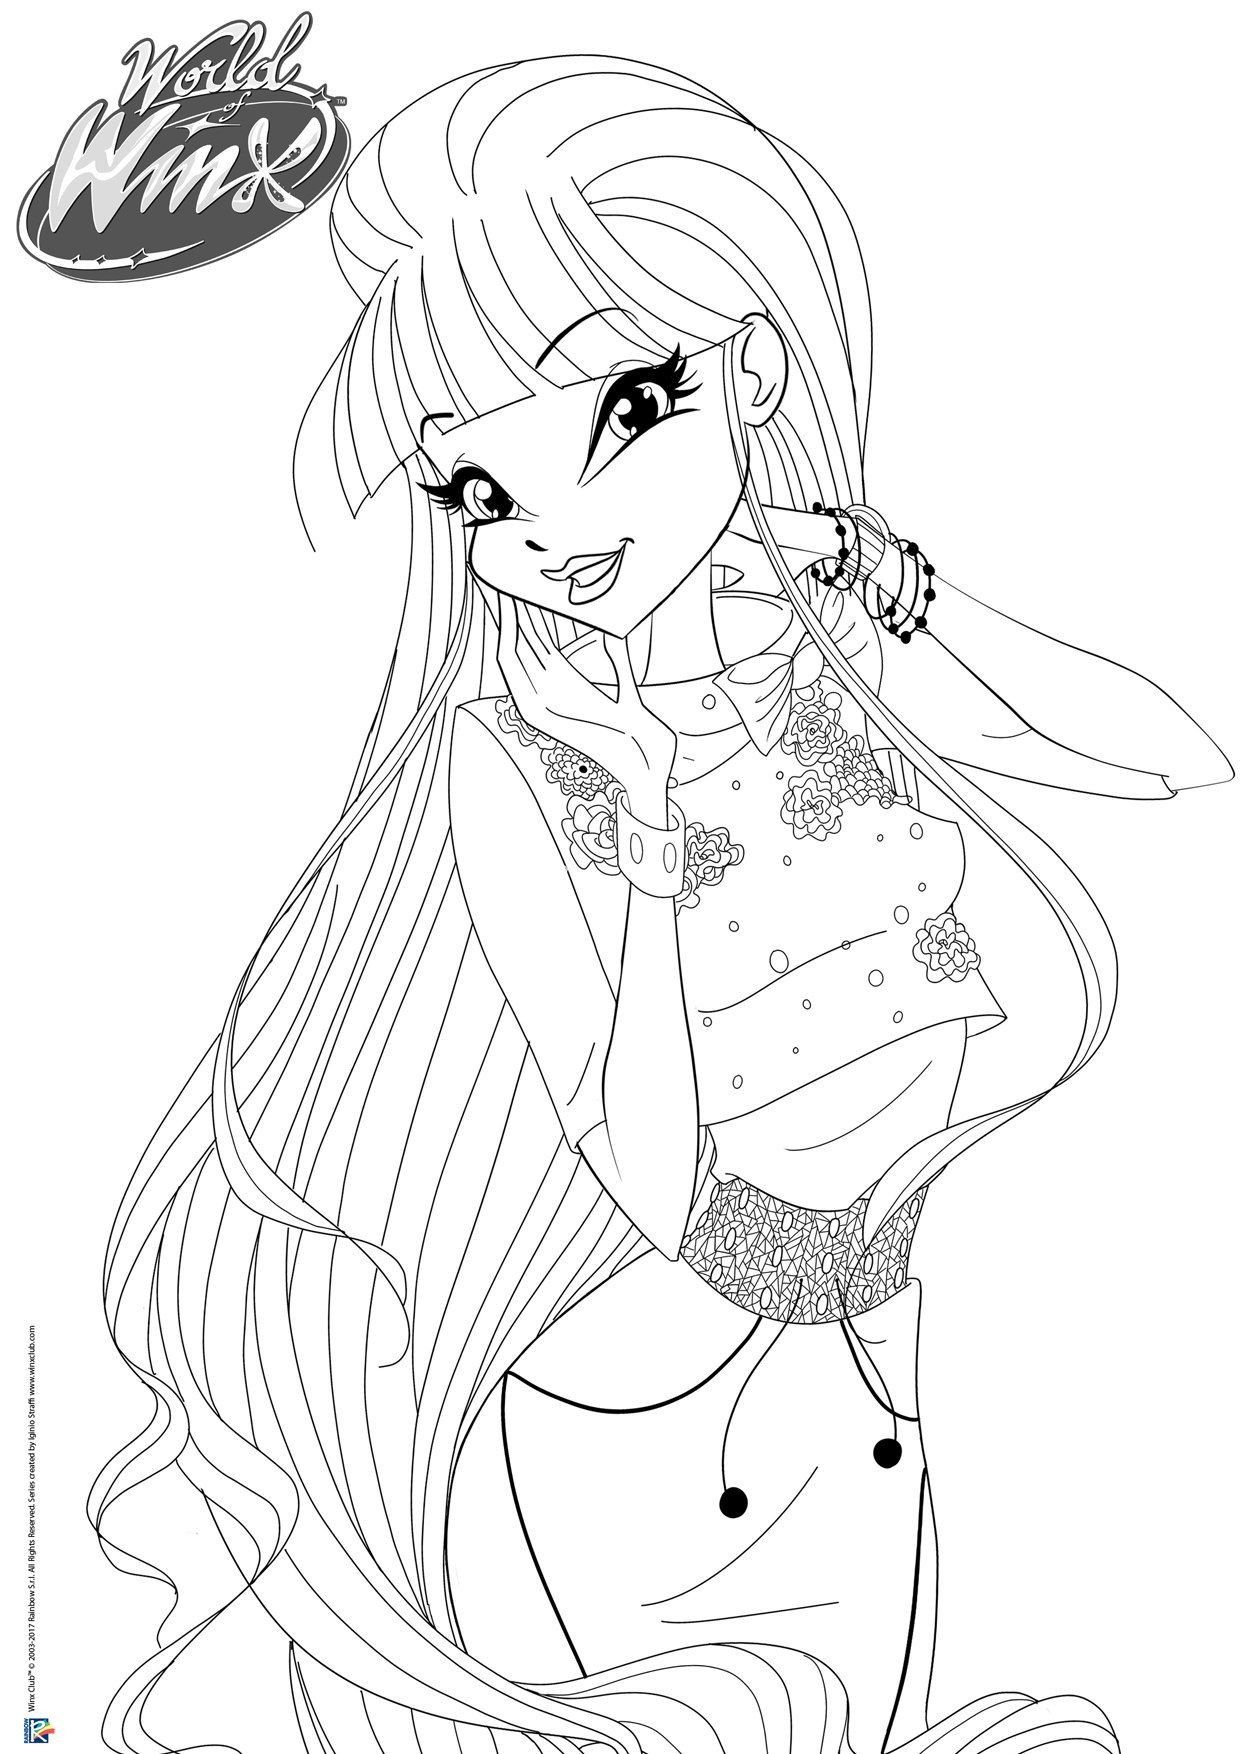 6 Anime Coloring Pages Printable Various Styles In